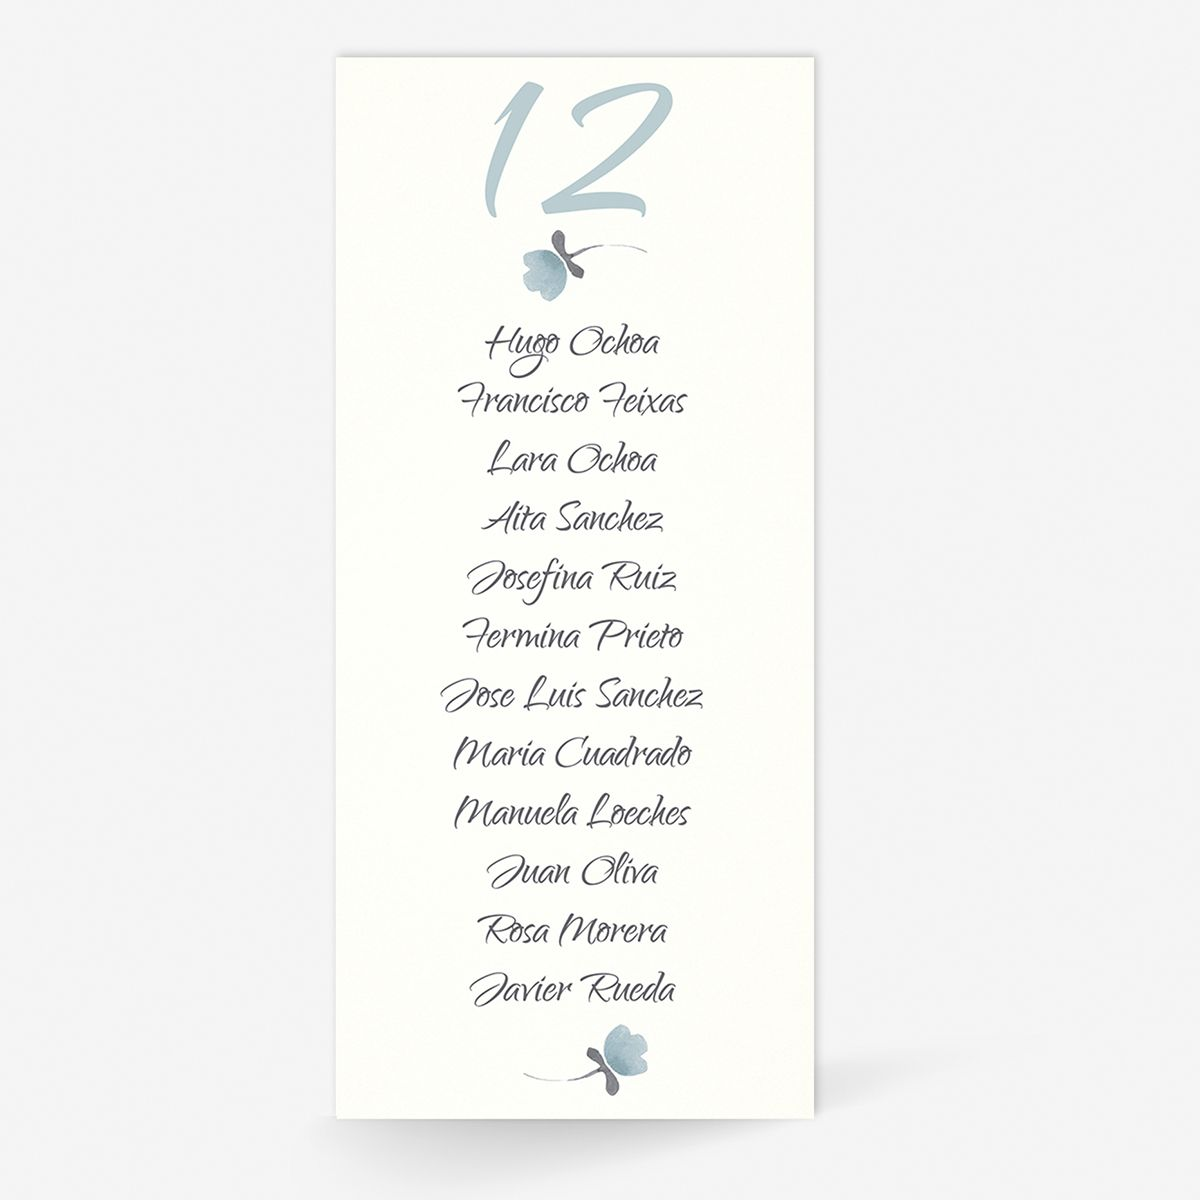 Plan de mesa (Seating plan) boda Tintanuez